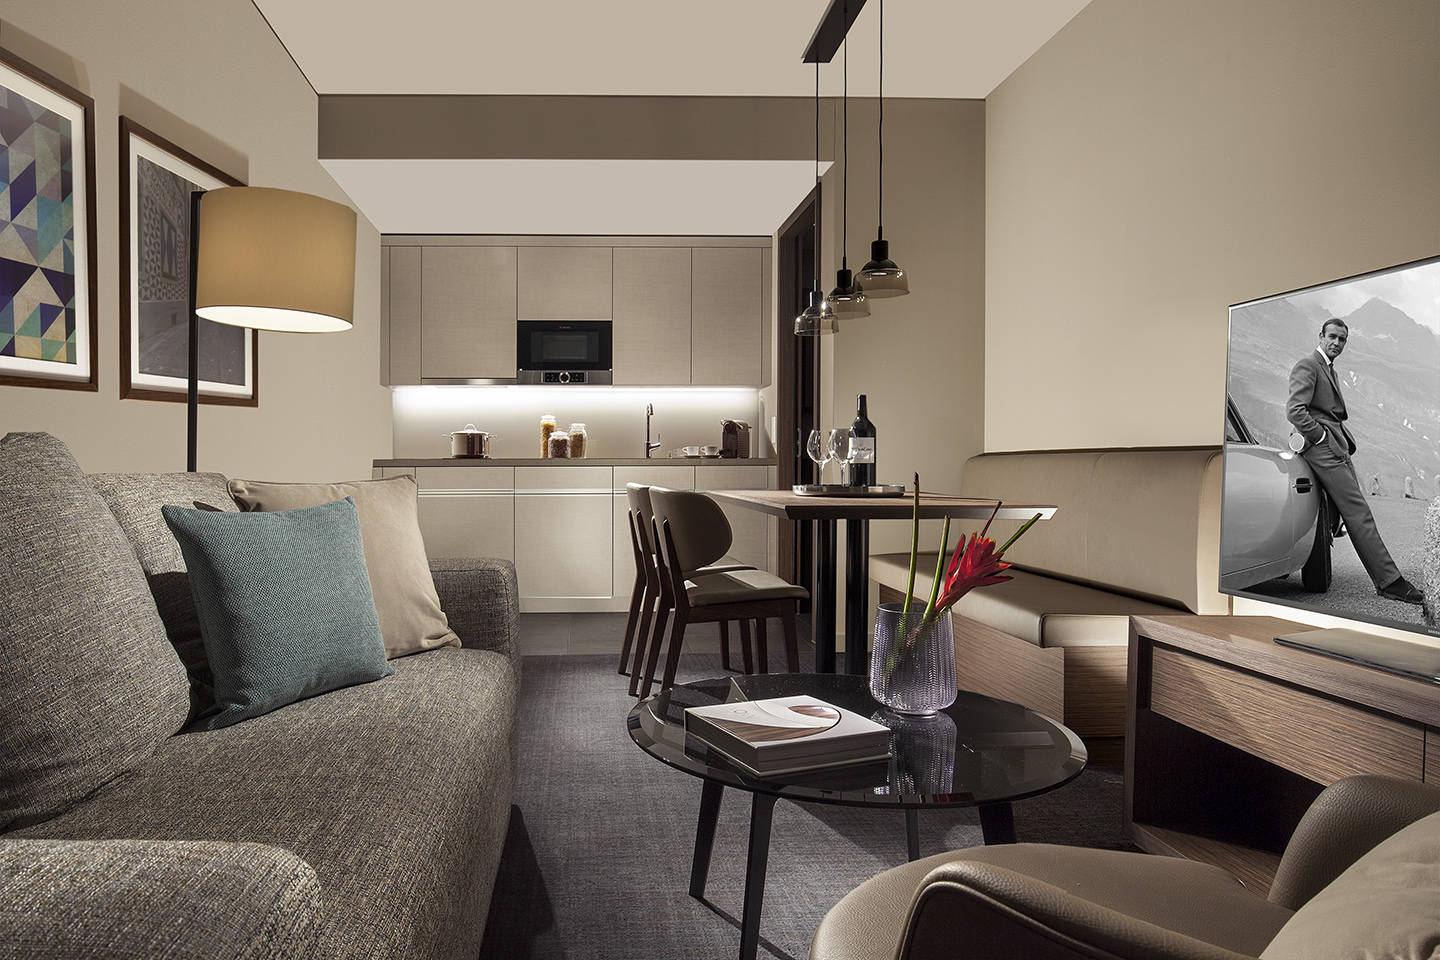 ACASA Suite with integrated kitchenette in ACASA Suites Zurich.